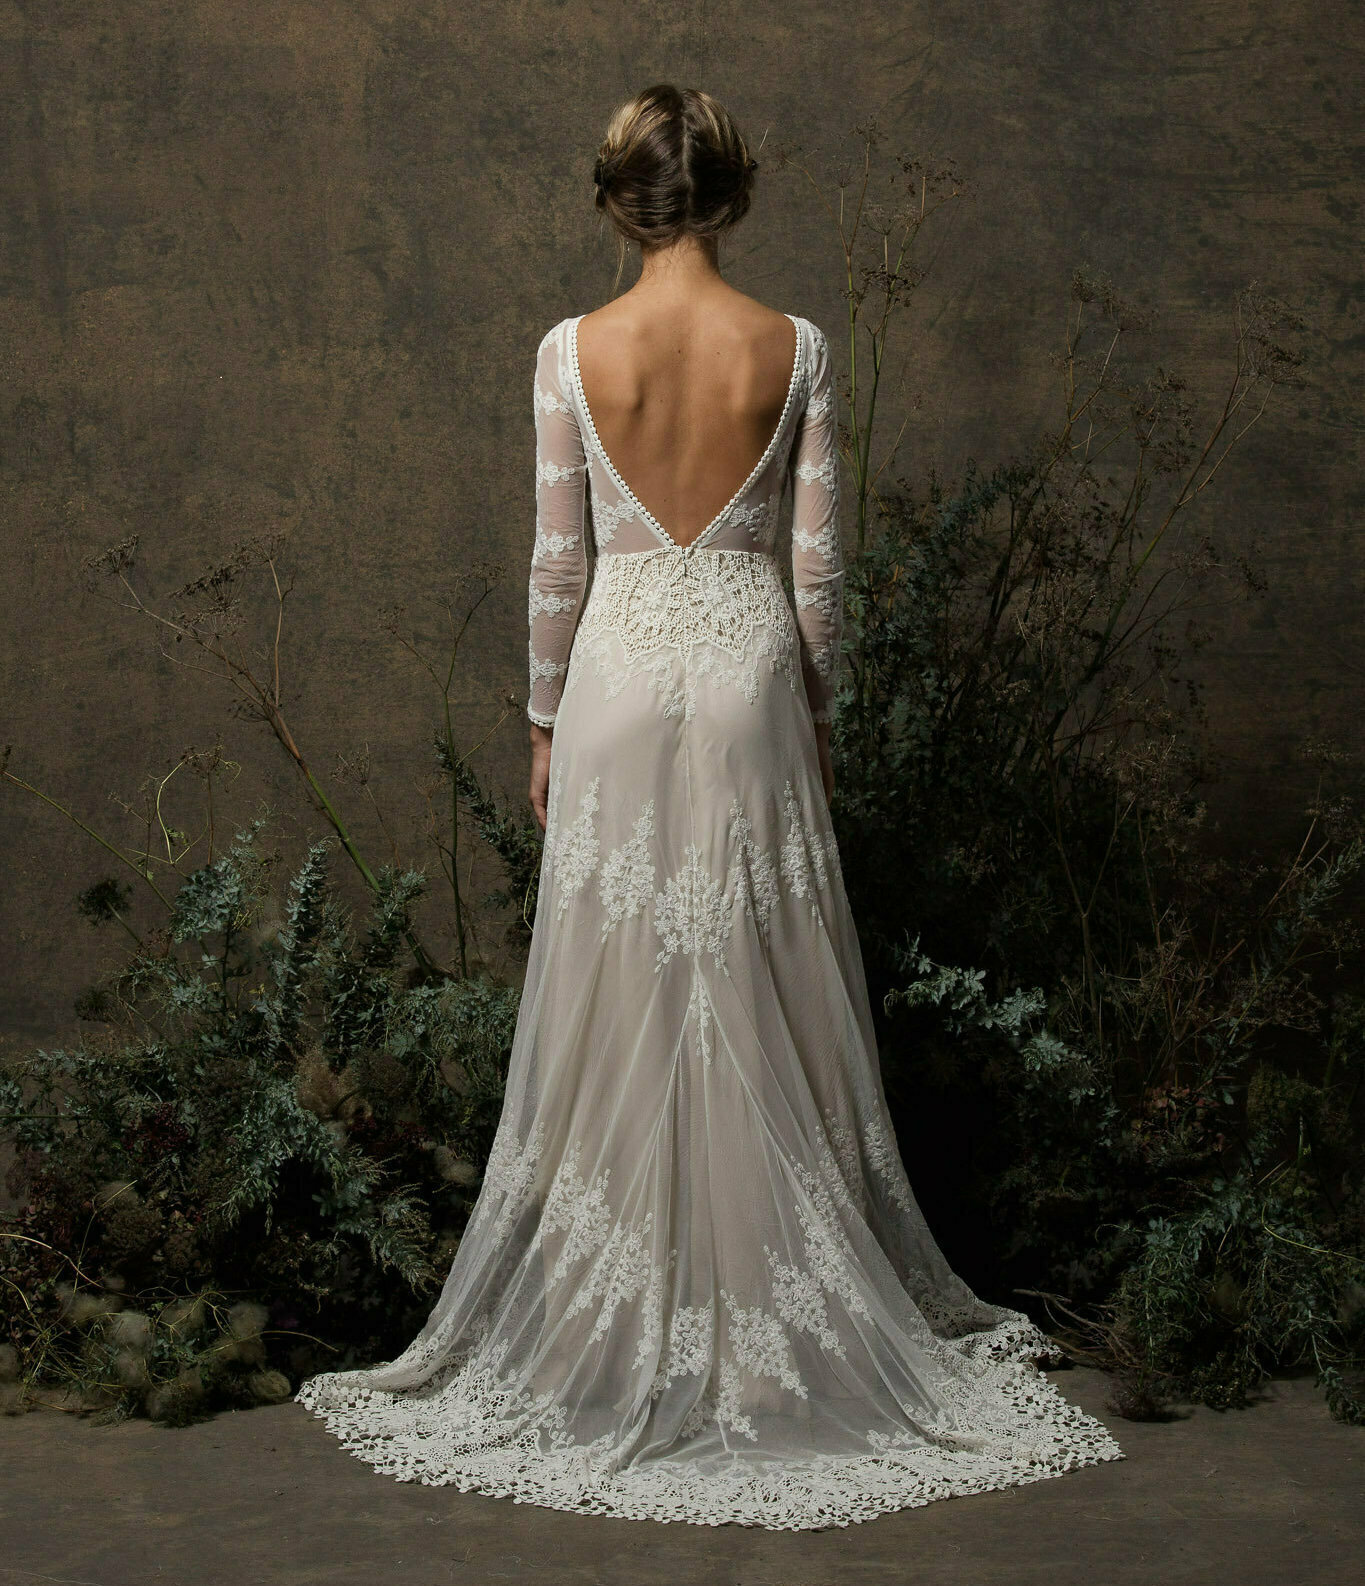 dreamers-and-lovers-aurora-long-sleeves-boho-wedding-dress-with-open-back